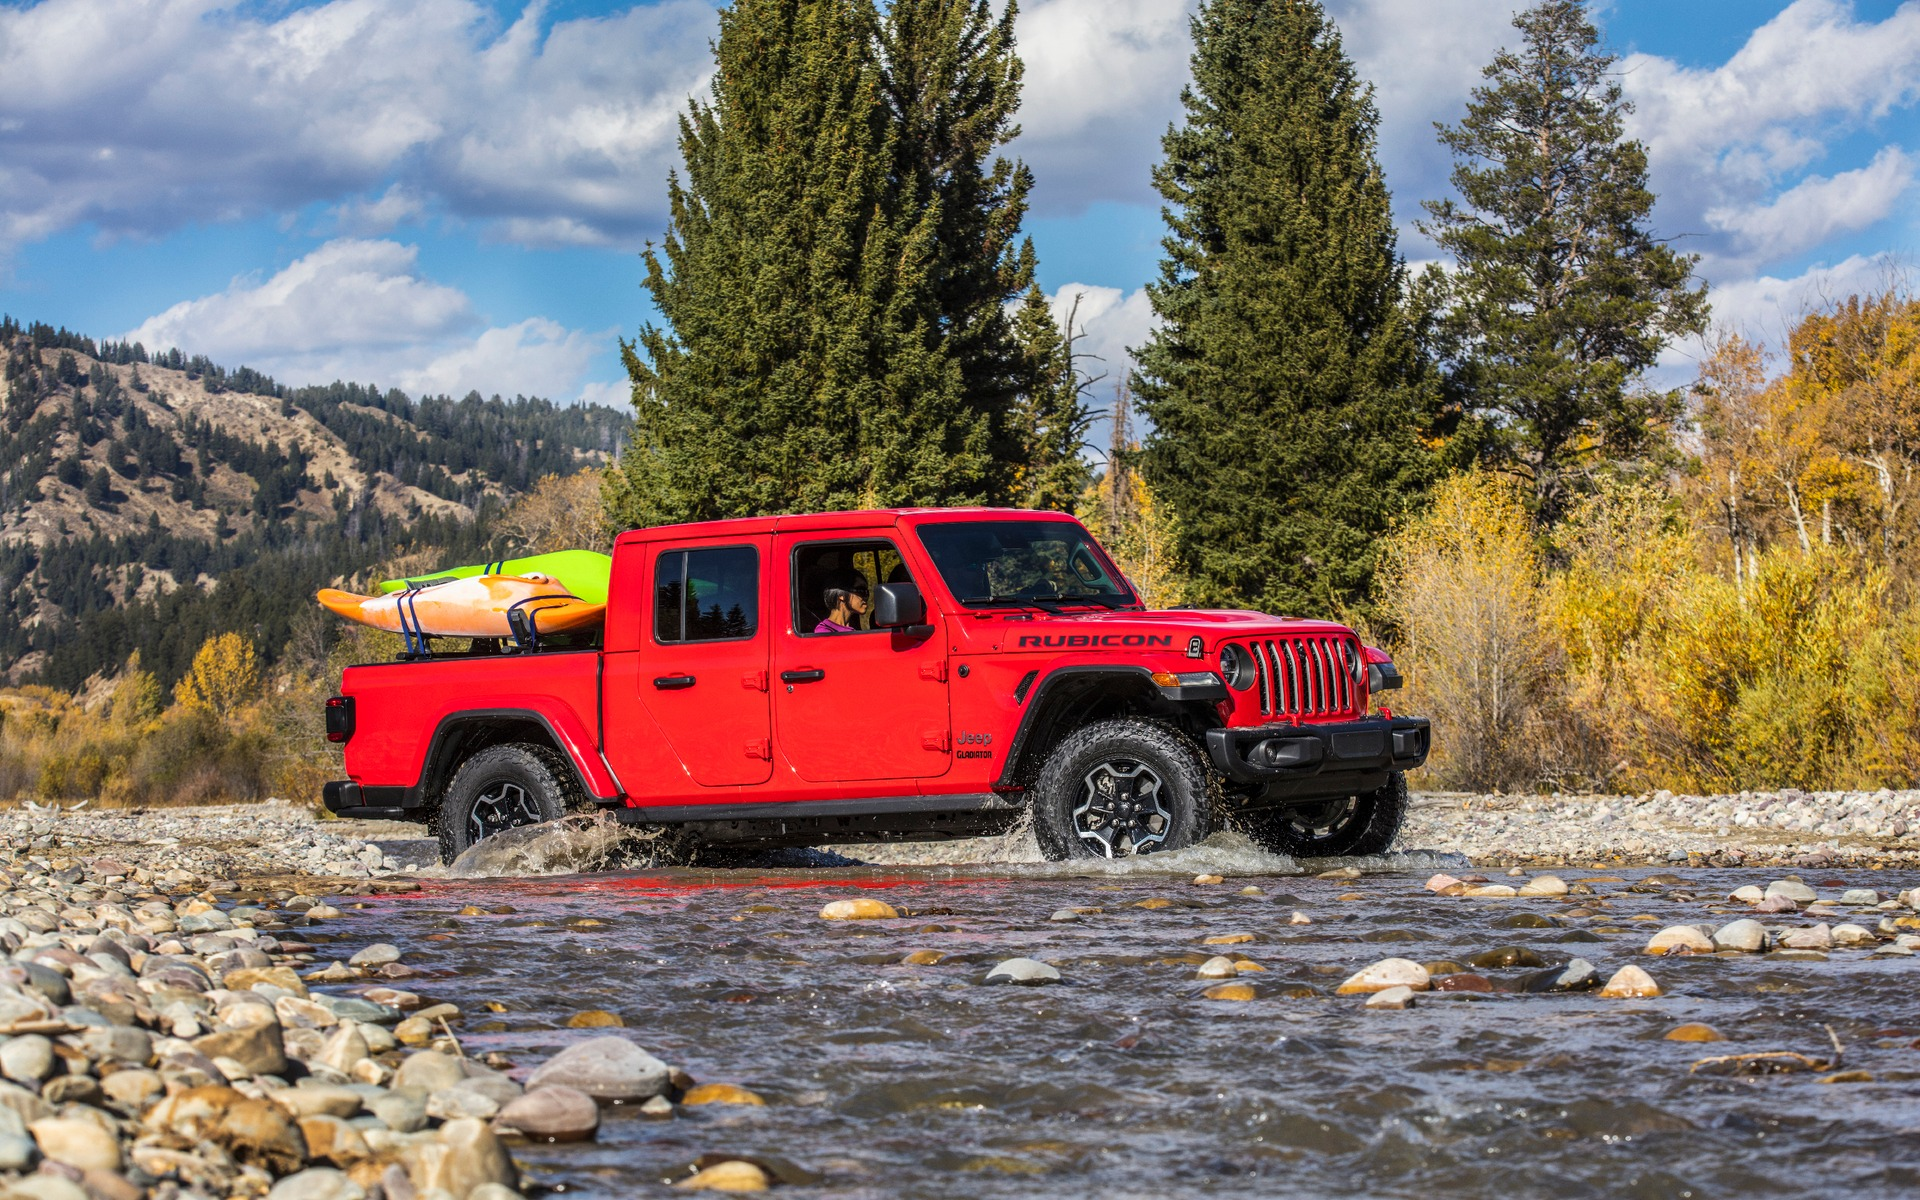 2020 Jeep Gladiator: We're Finally Going to Drive it - The